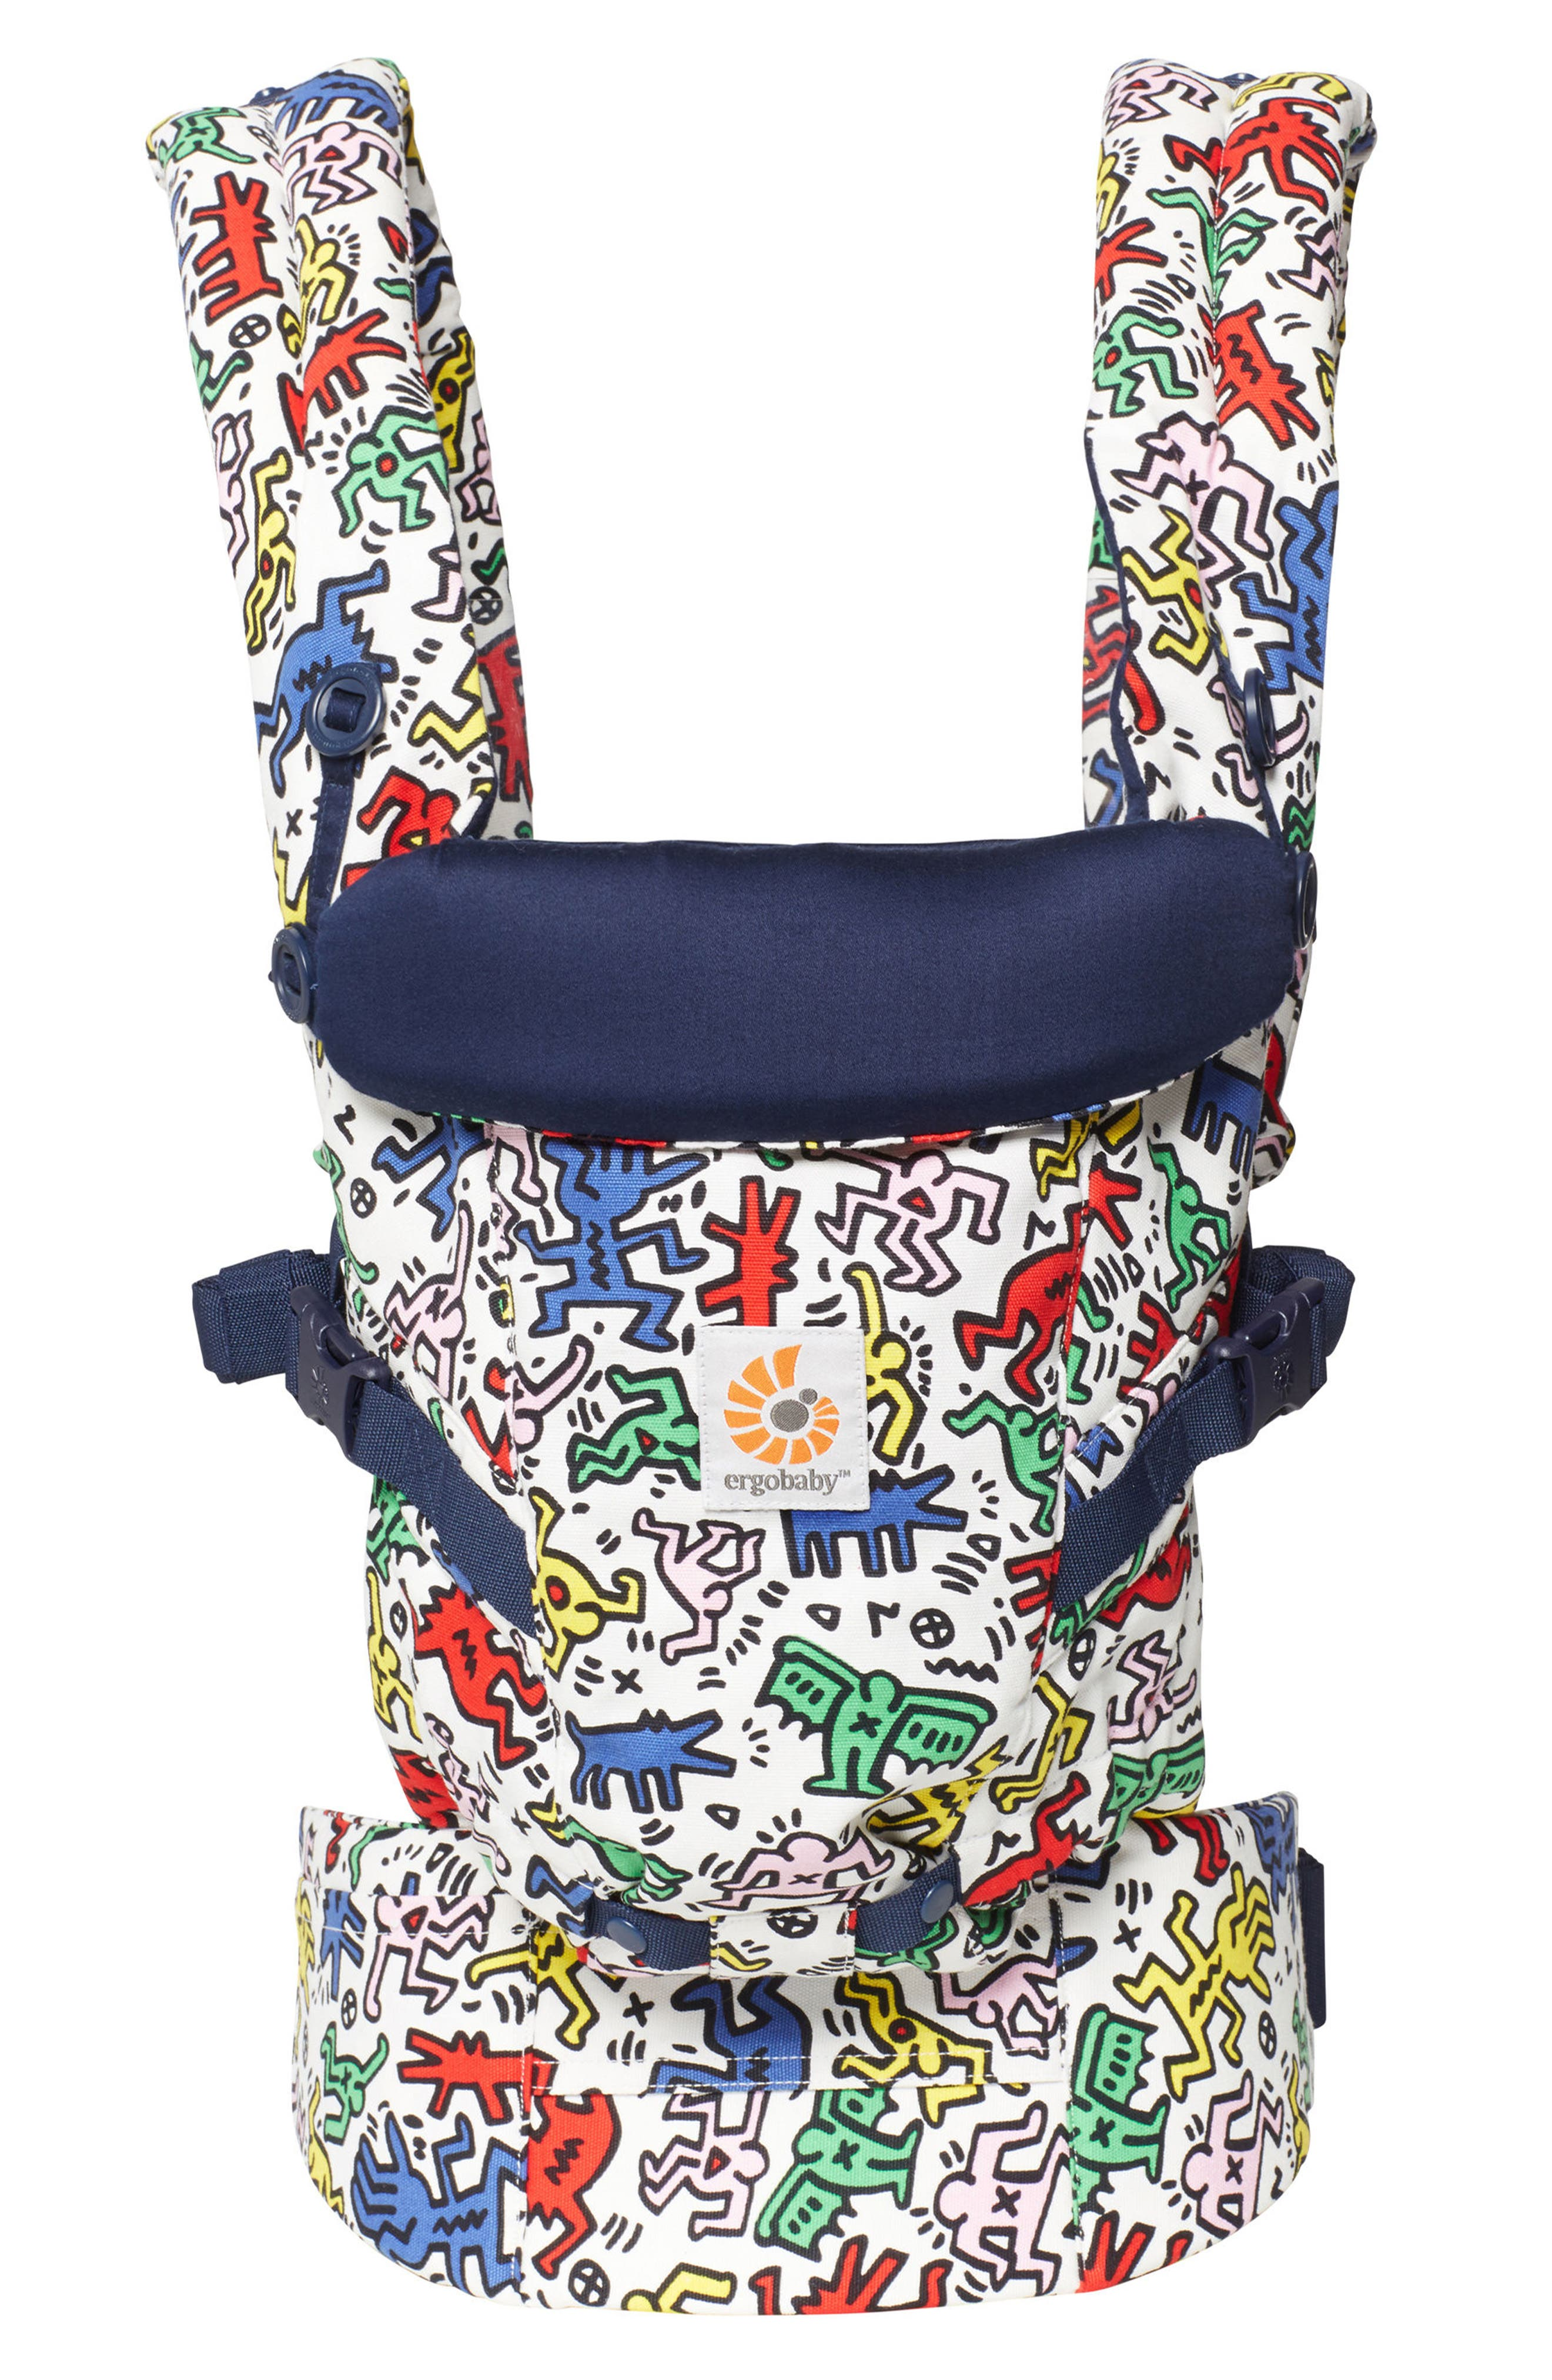 Special Edition Keith Haring Three Position ADAPT Baby Carrier,                             Main thumbnail 1, color,                             700